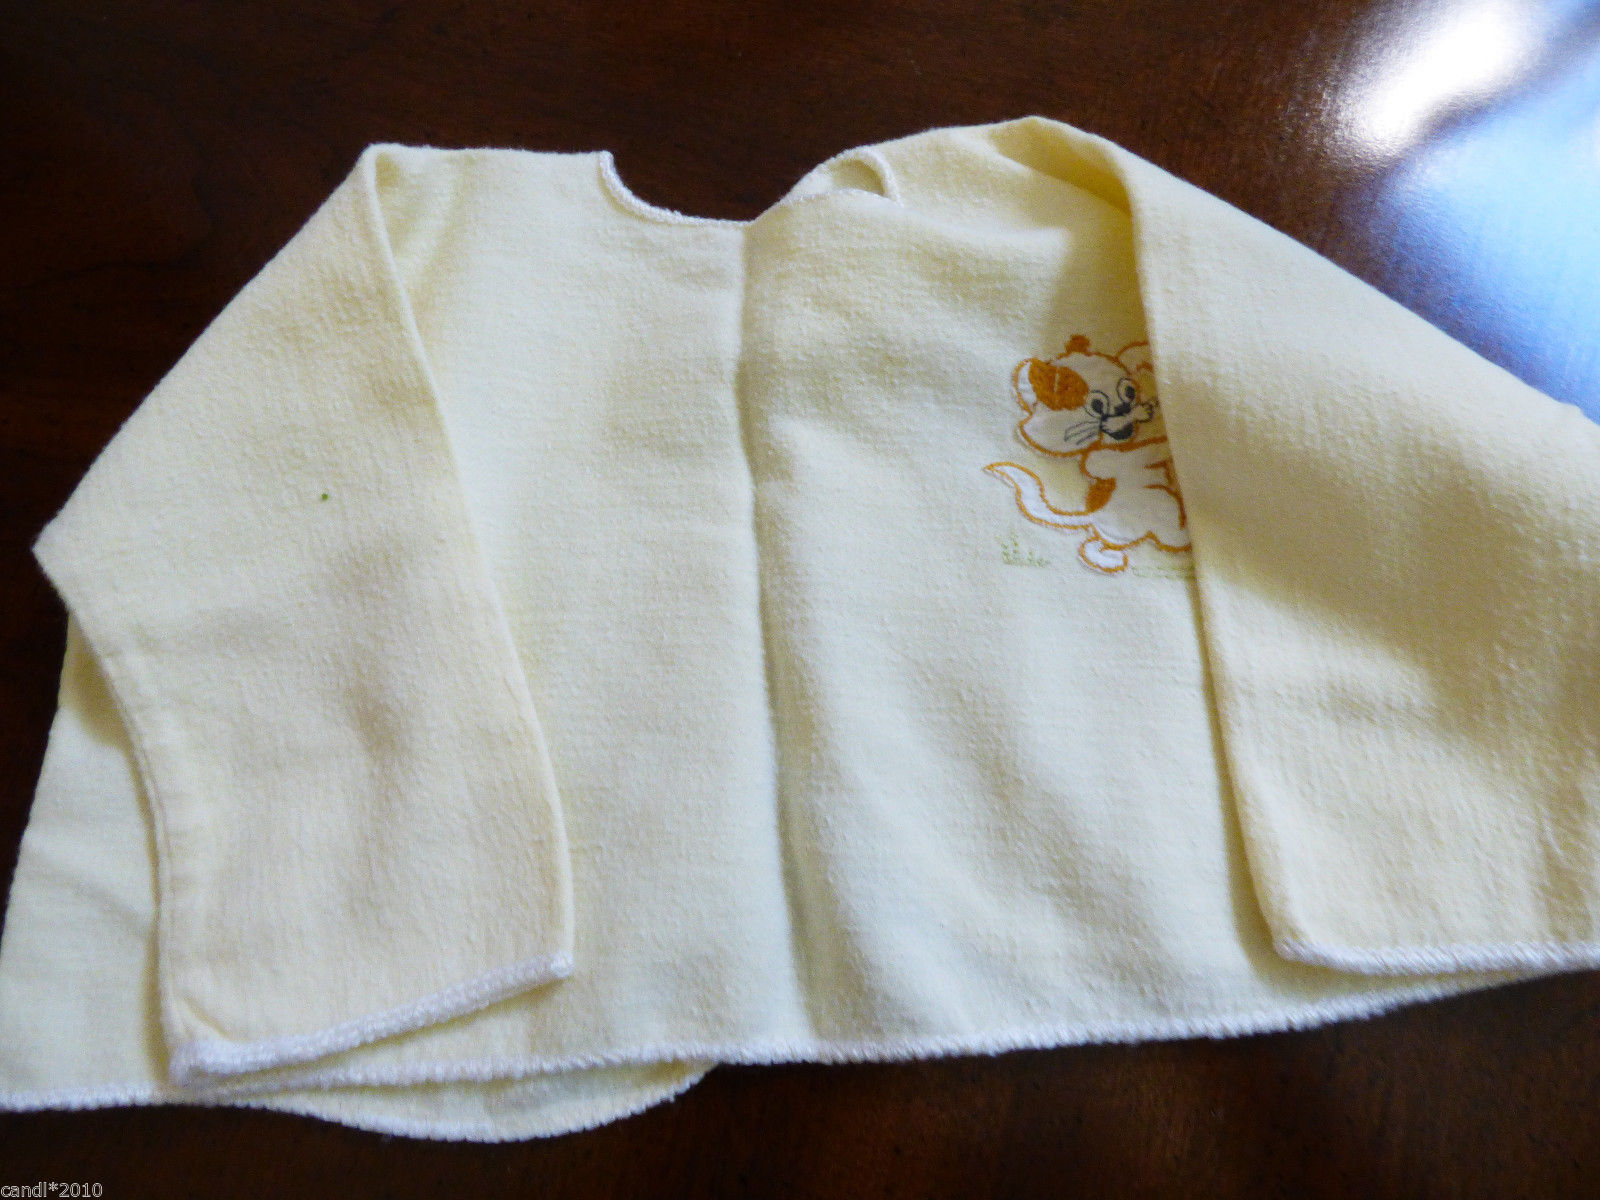 VTG 1960s Russian Newborn baby light yellow flannel cotton shirt Rasposhonka Dog